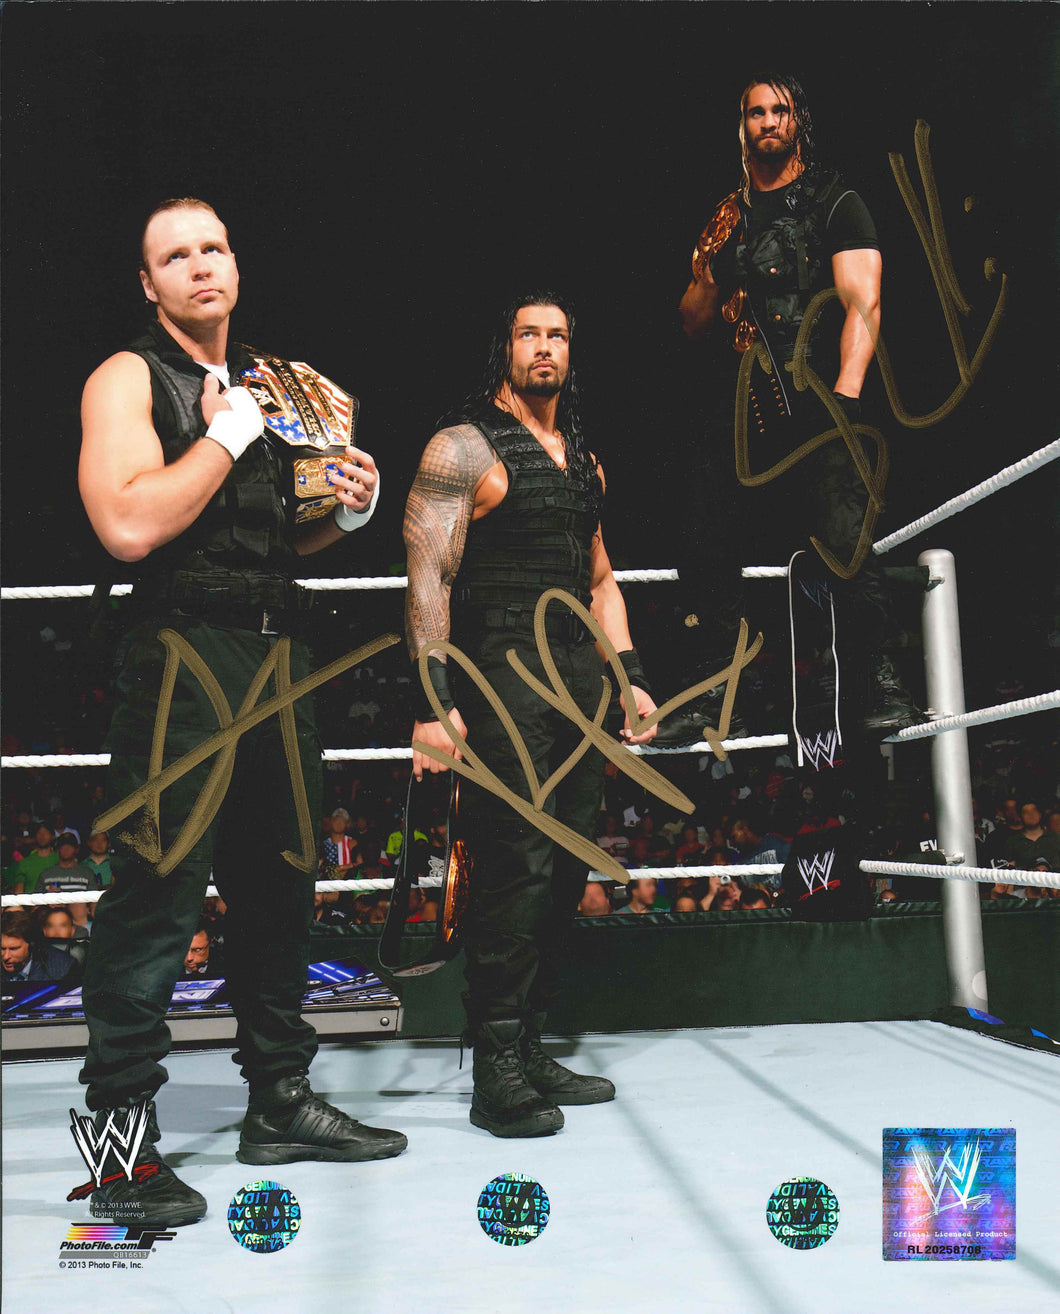 The Shield Signed WWE Photo [Dean Ambrose, Seth Rollins, Roman Reigns]